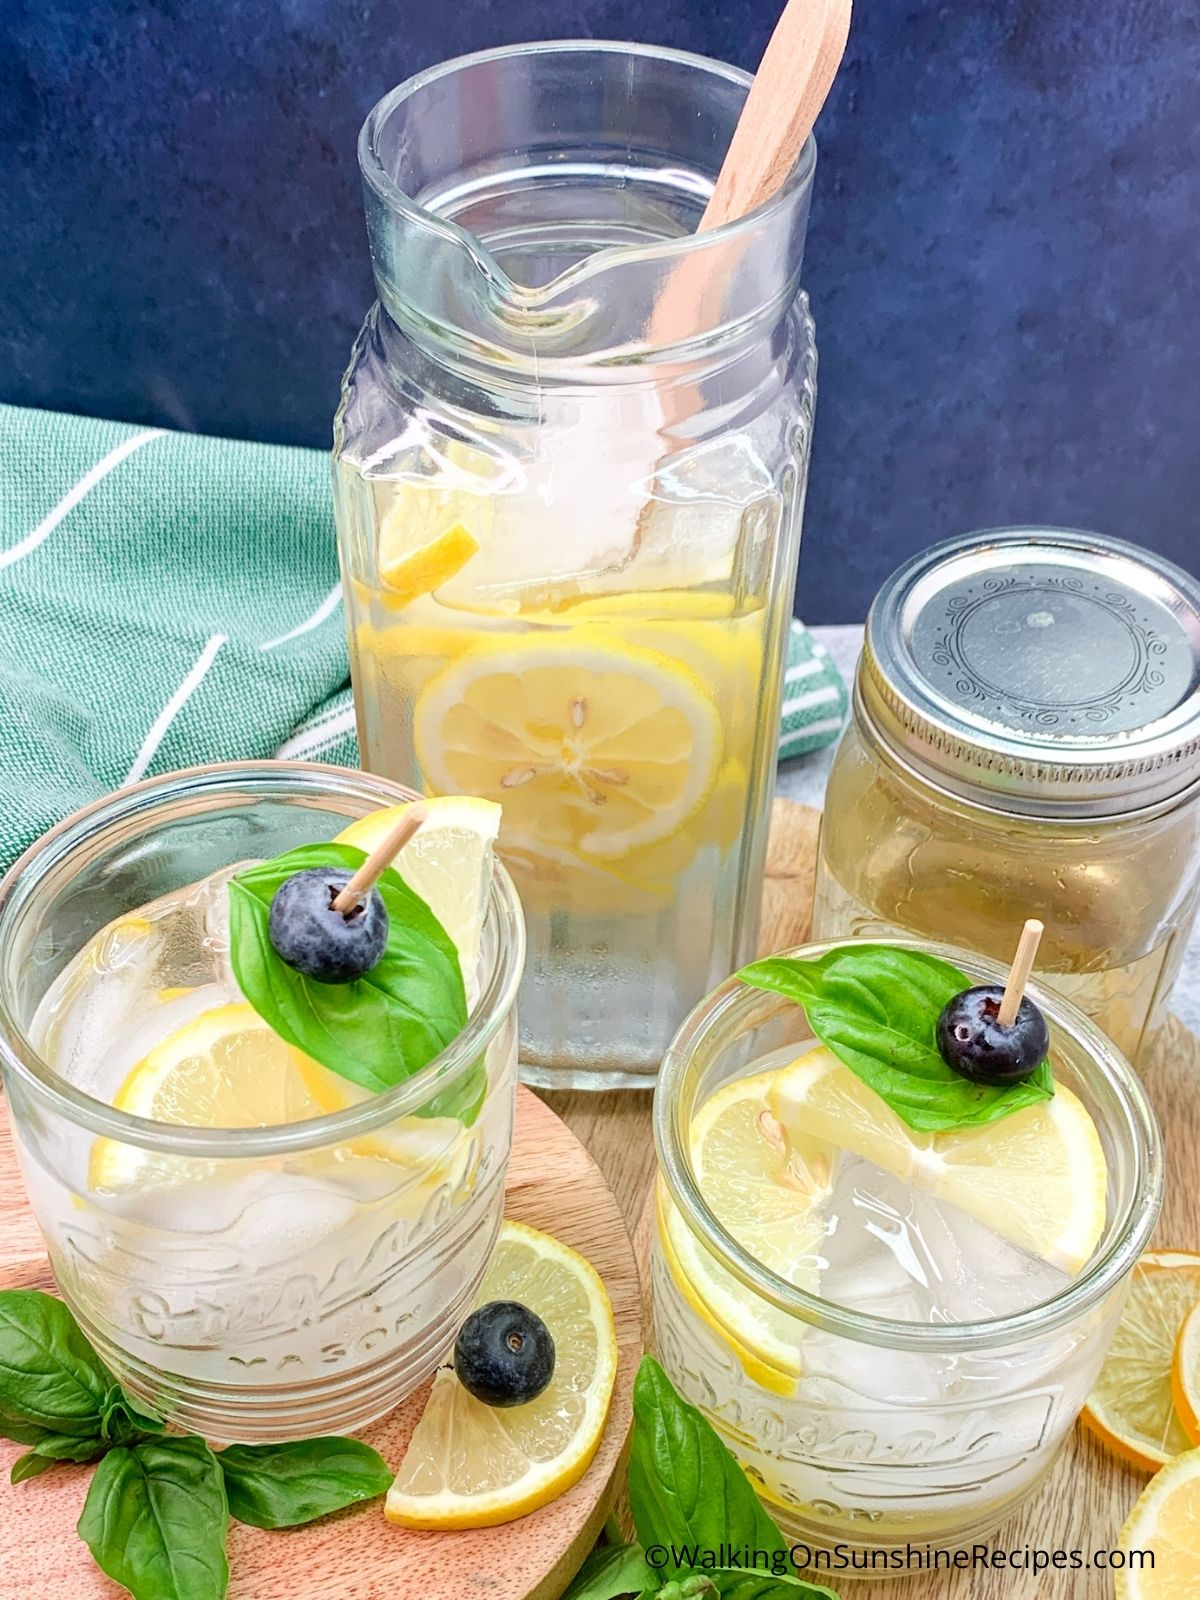 Lemon Water with Basil Simple Syrup.